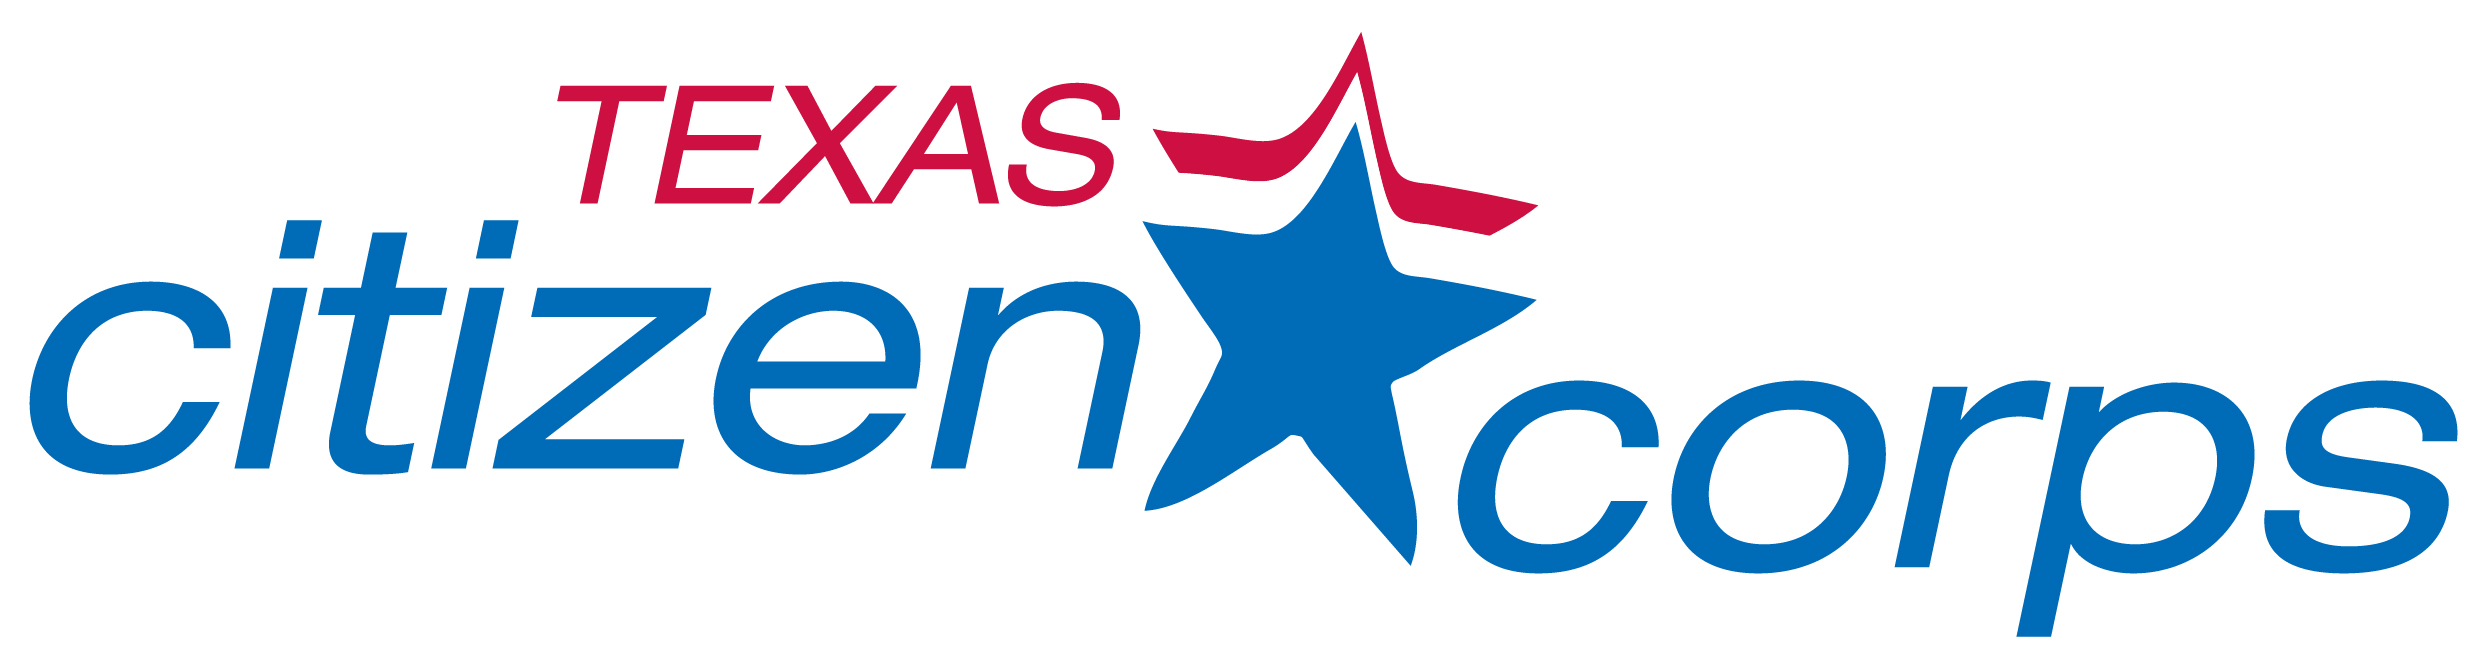 citizencorptexas_2color-logo